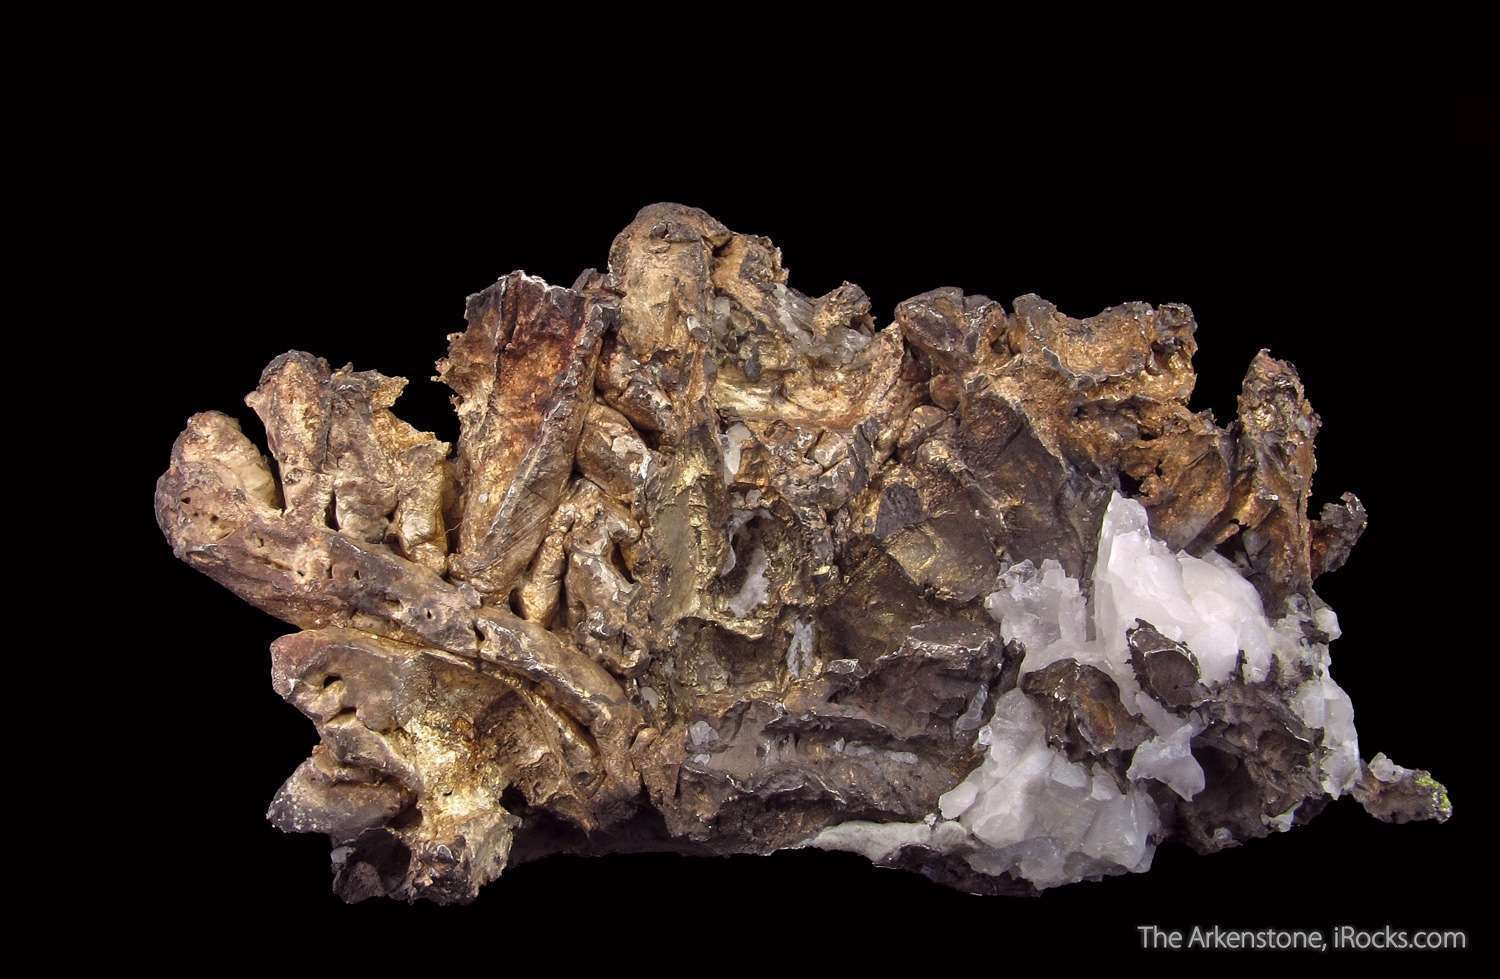 A crystallized aesthetic curvaceous Silver specimen famous Copper